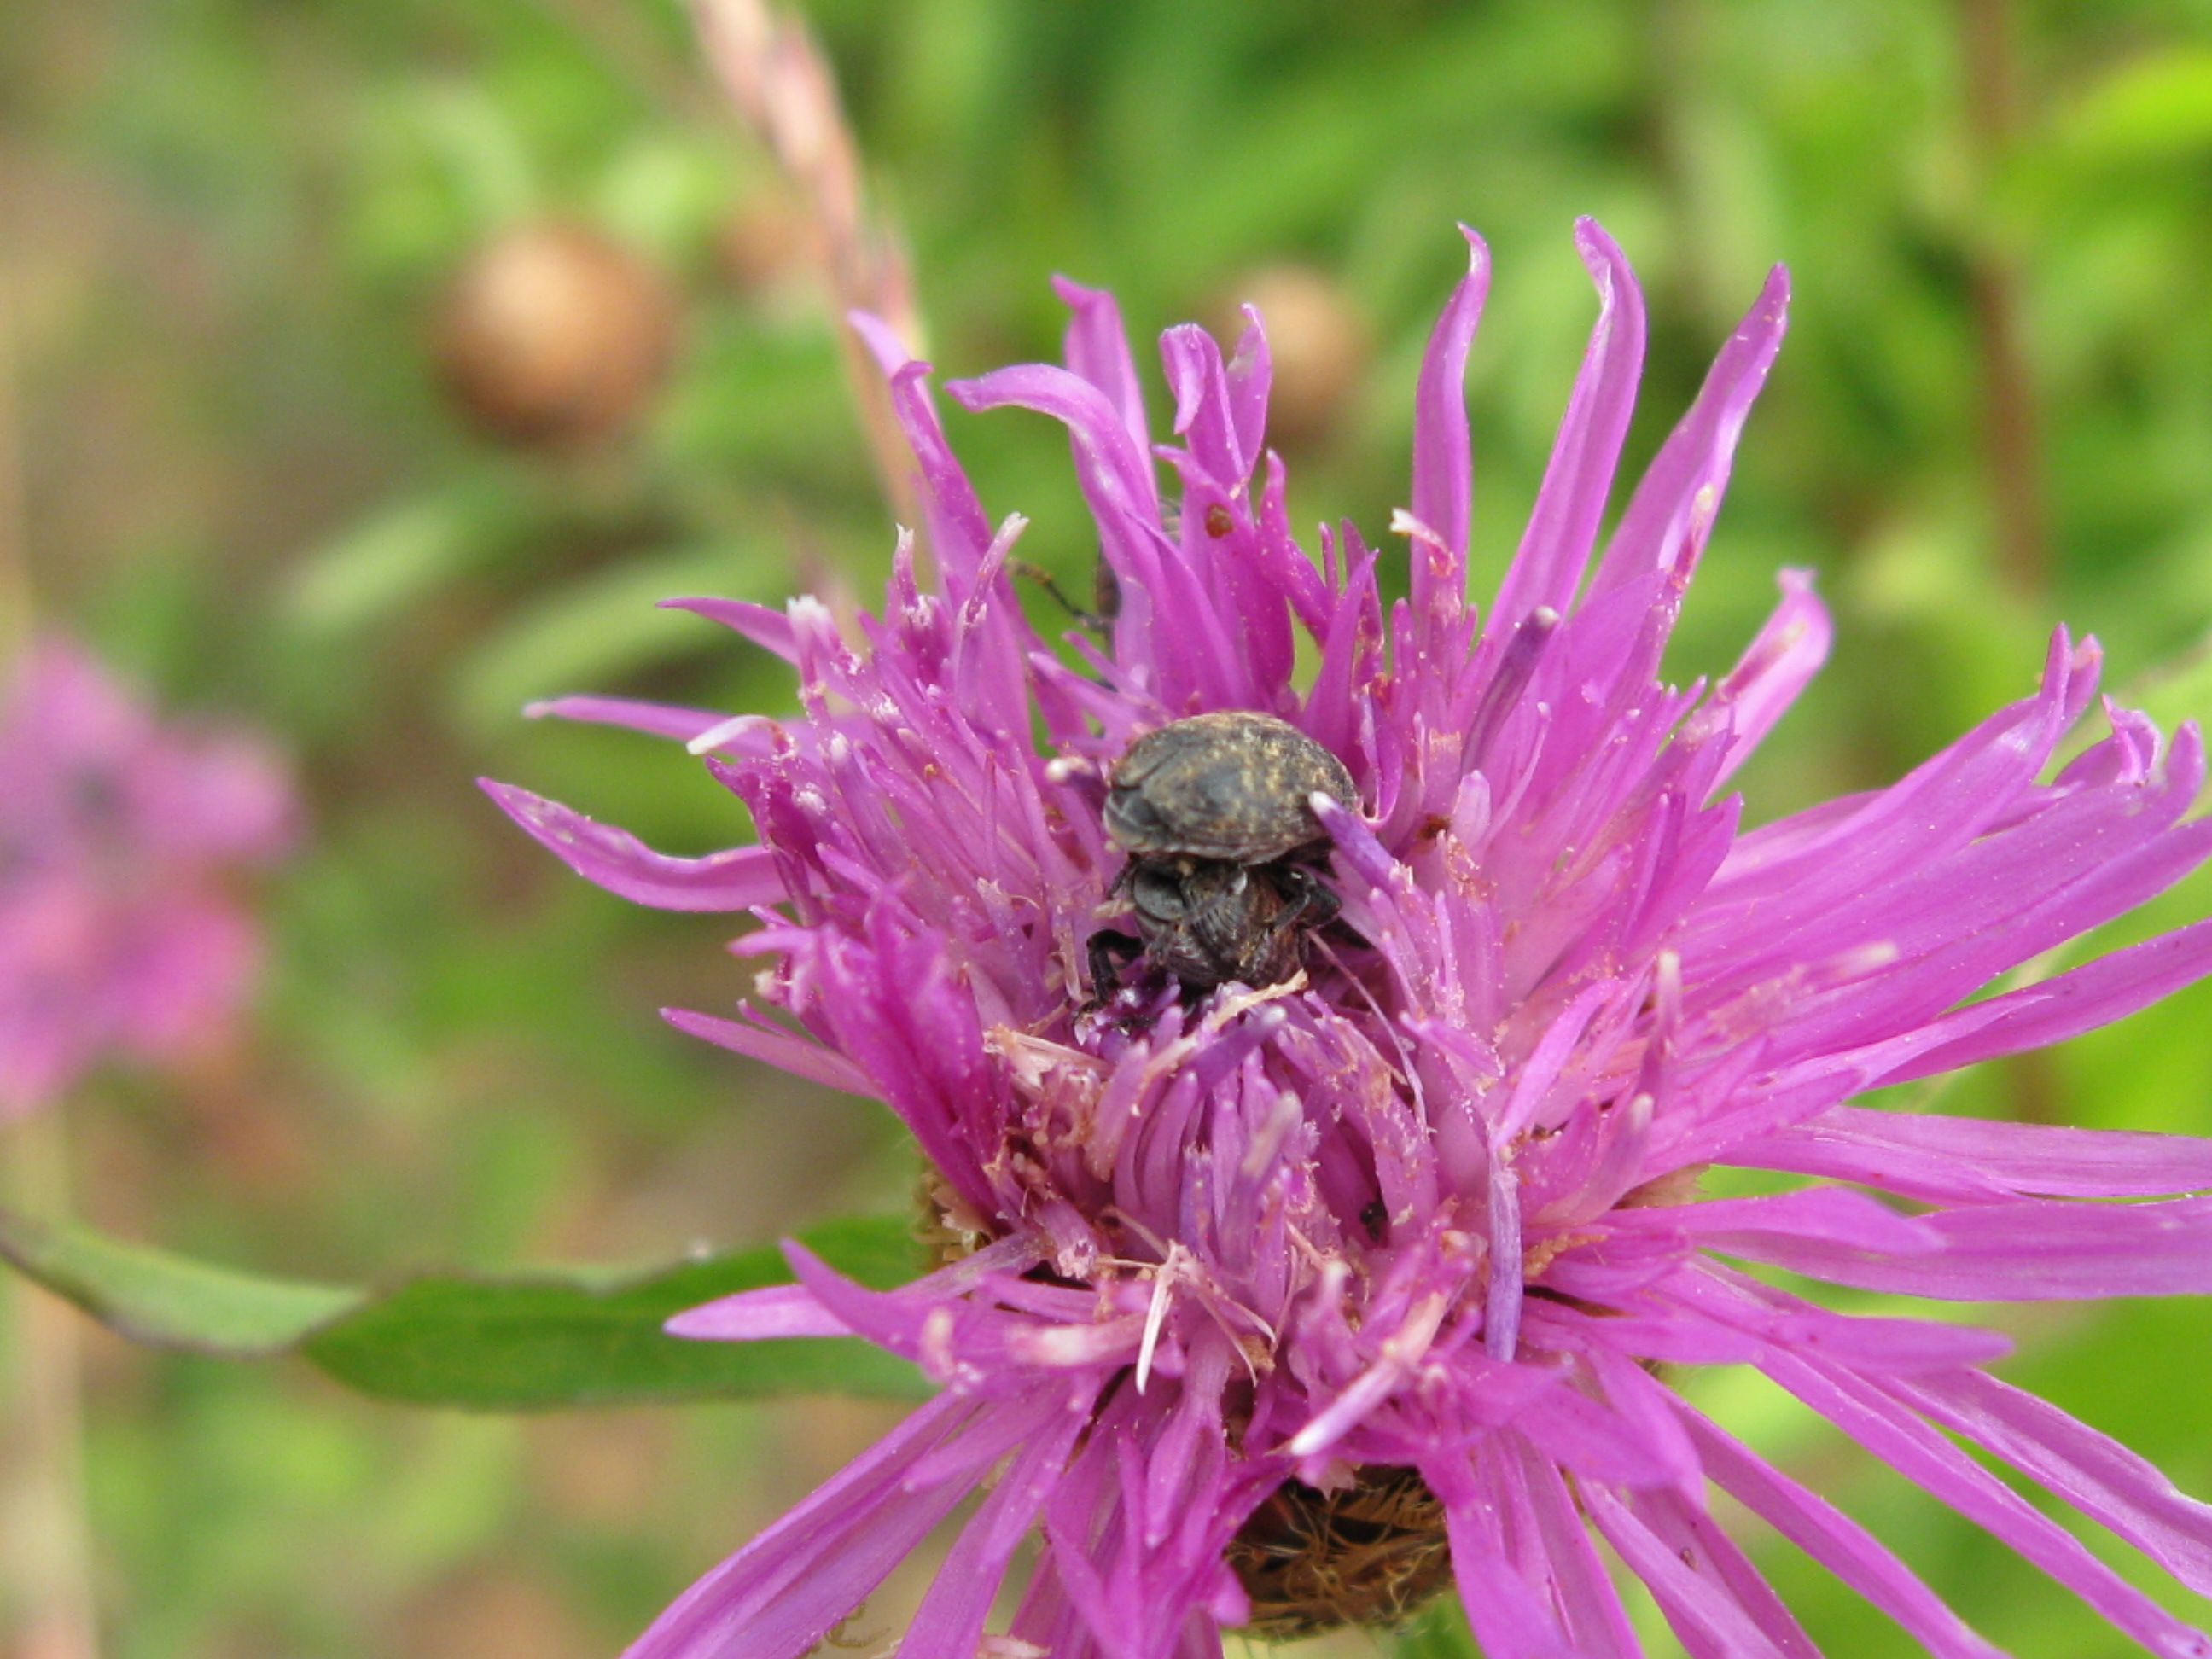 Meadow knapweed insects